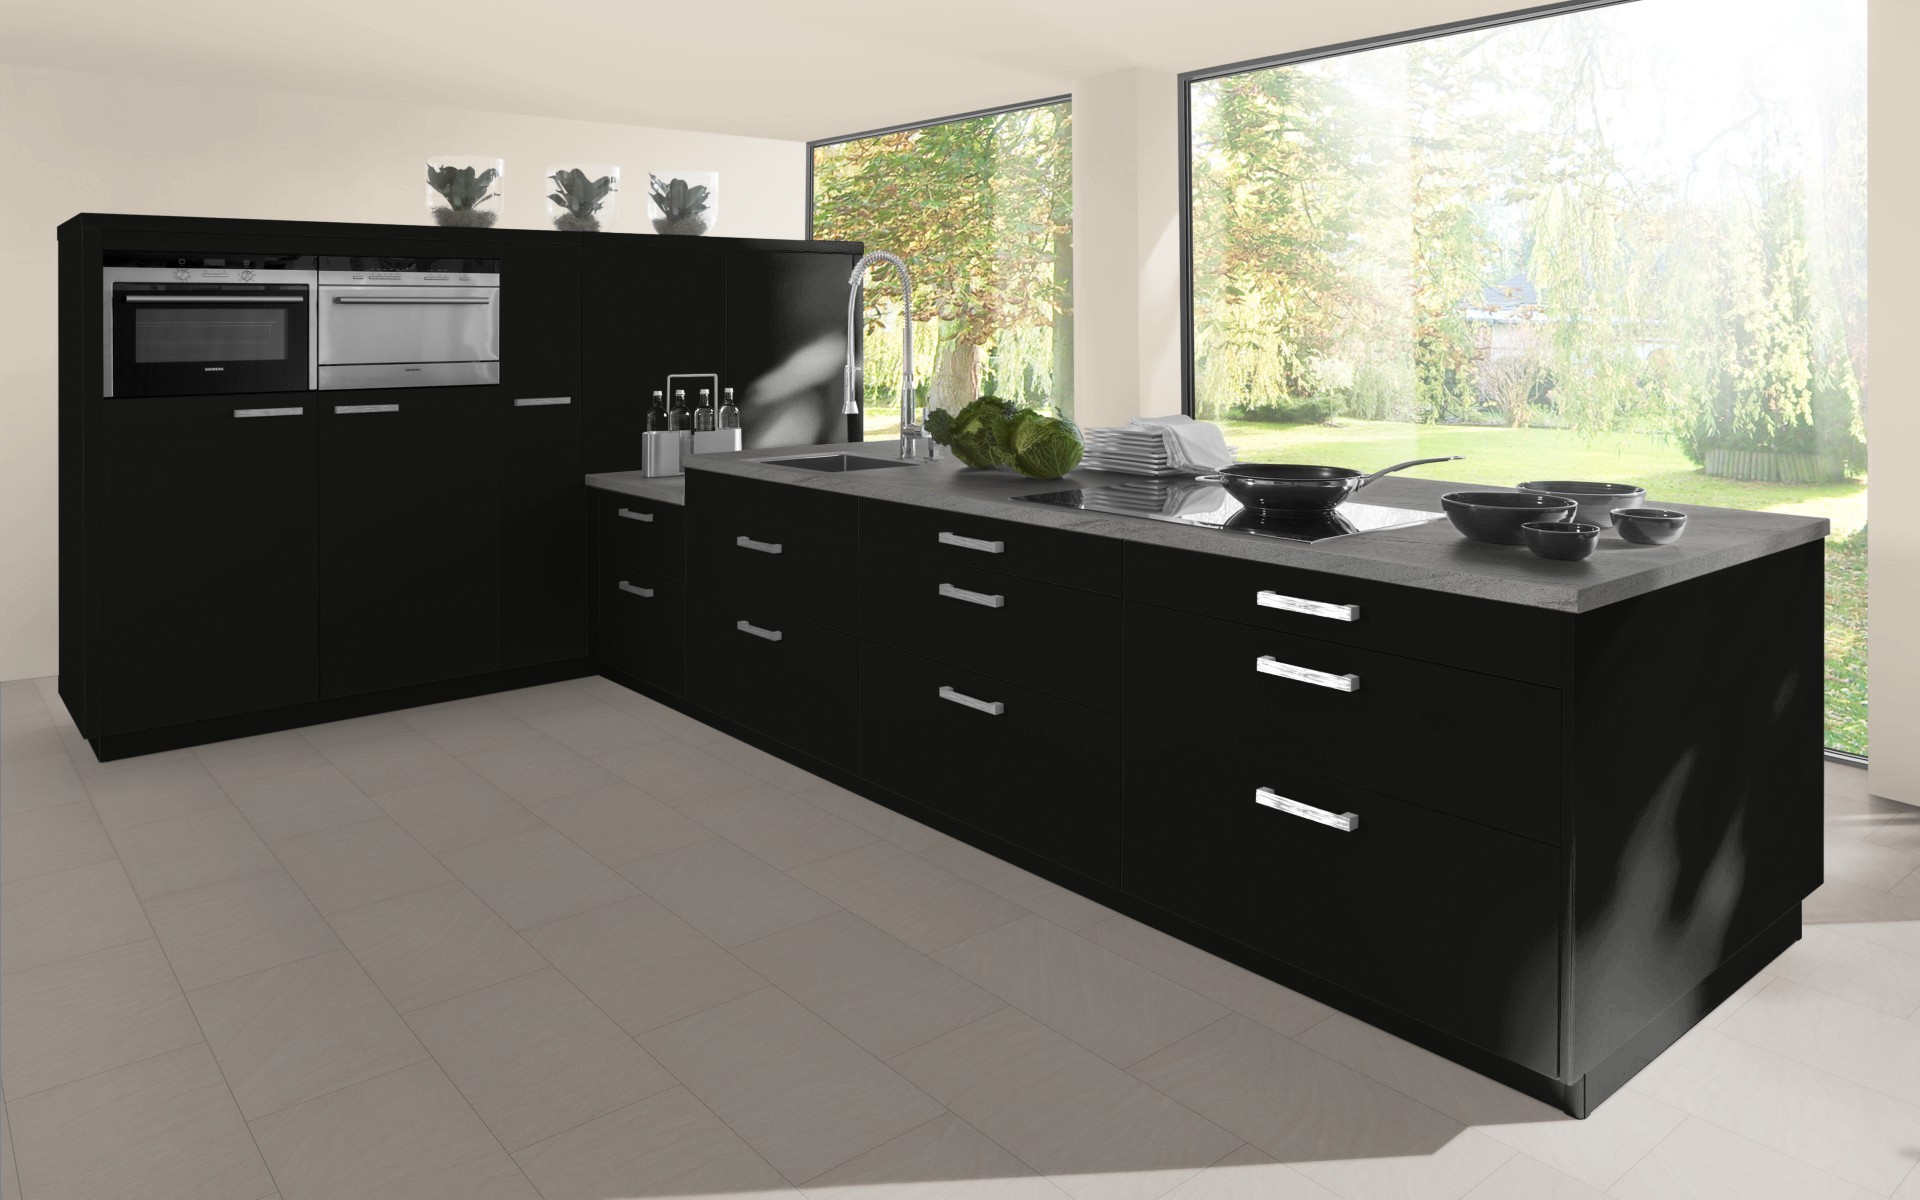 High Gloss Kitchen Door in Black